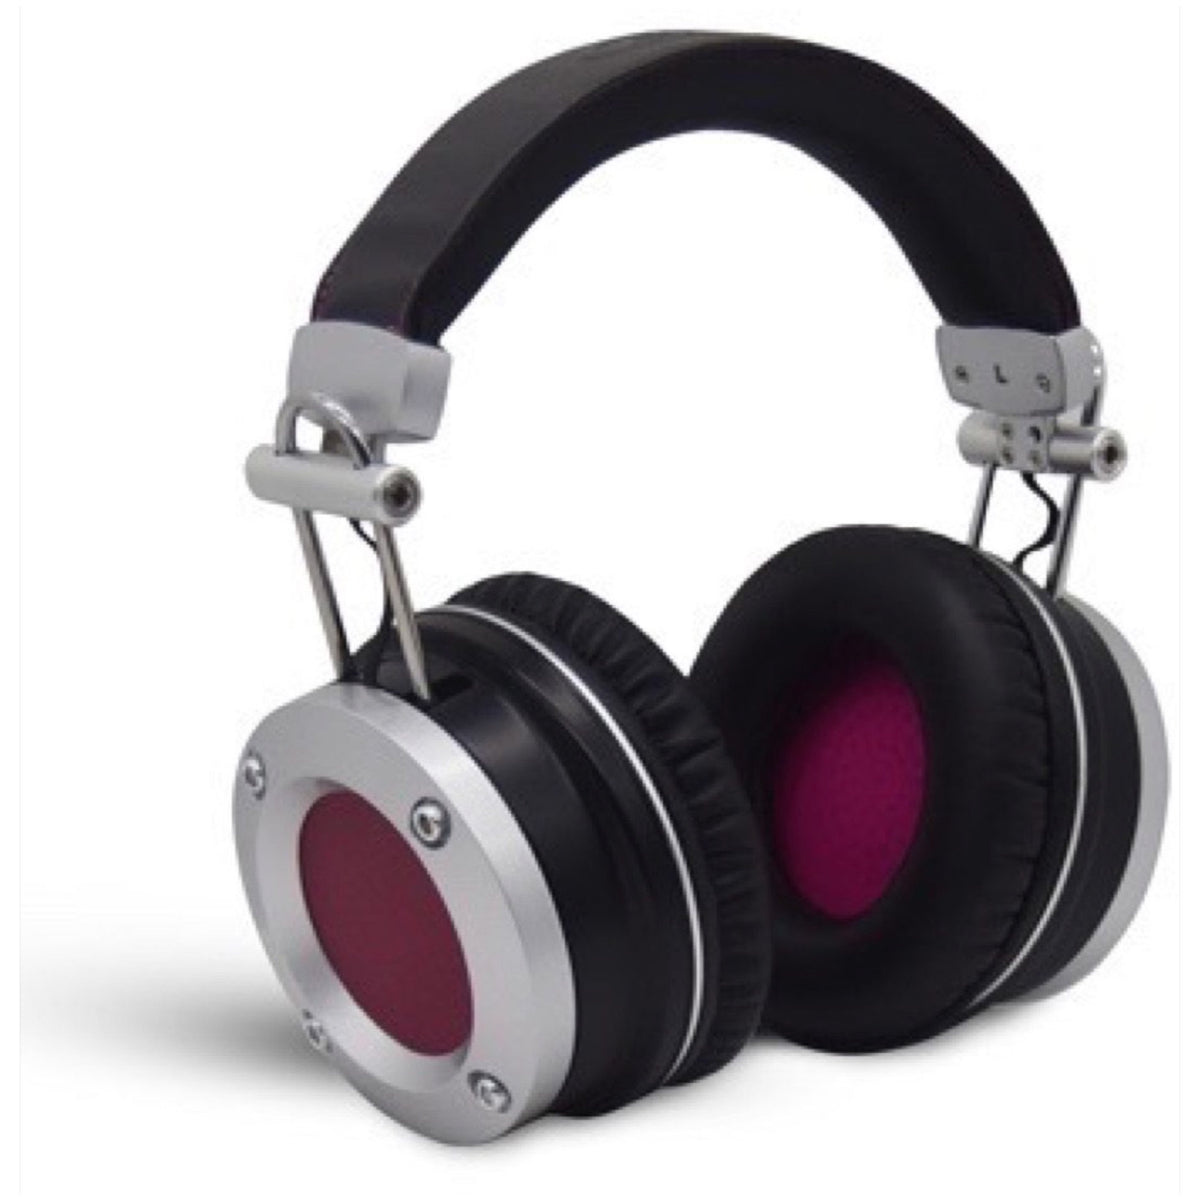 Avantone MP1 Mixphones Over-Ear Closed-Back Studio Headphones, Black